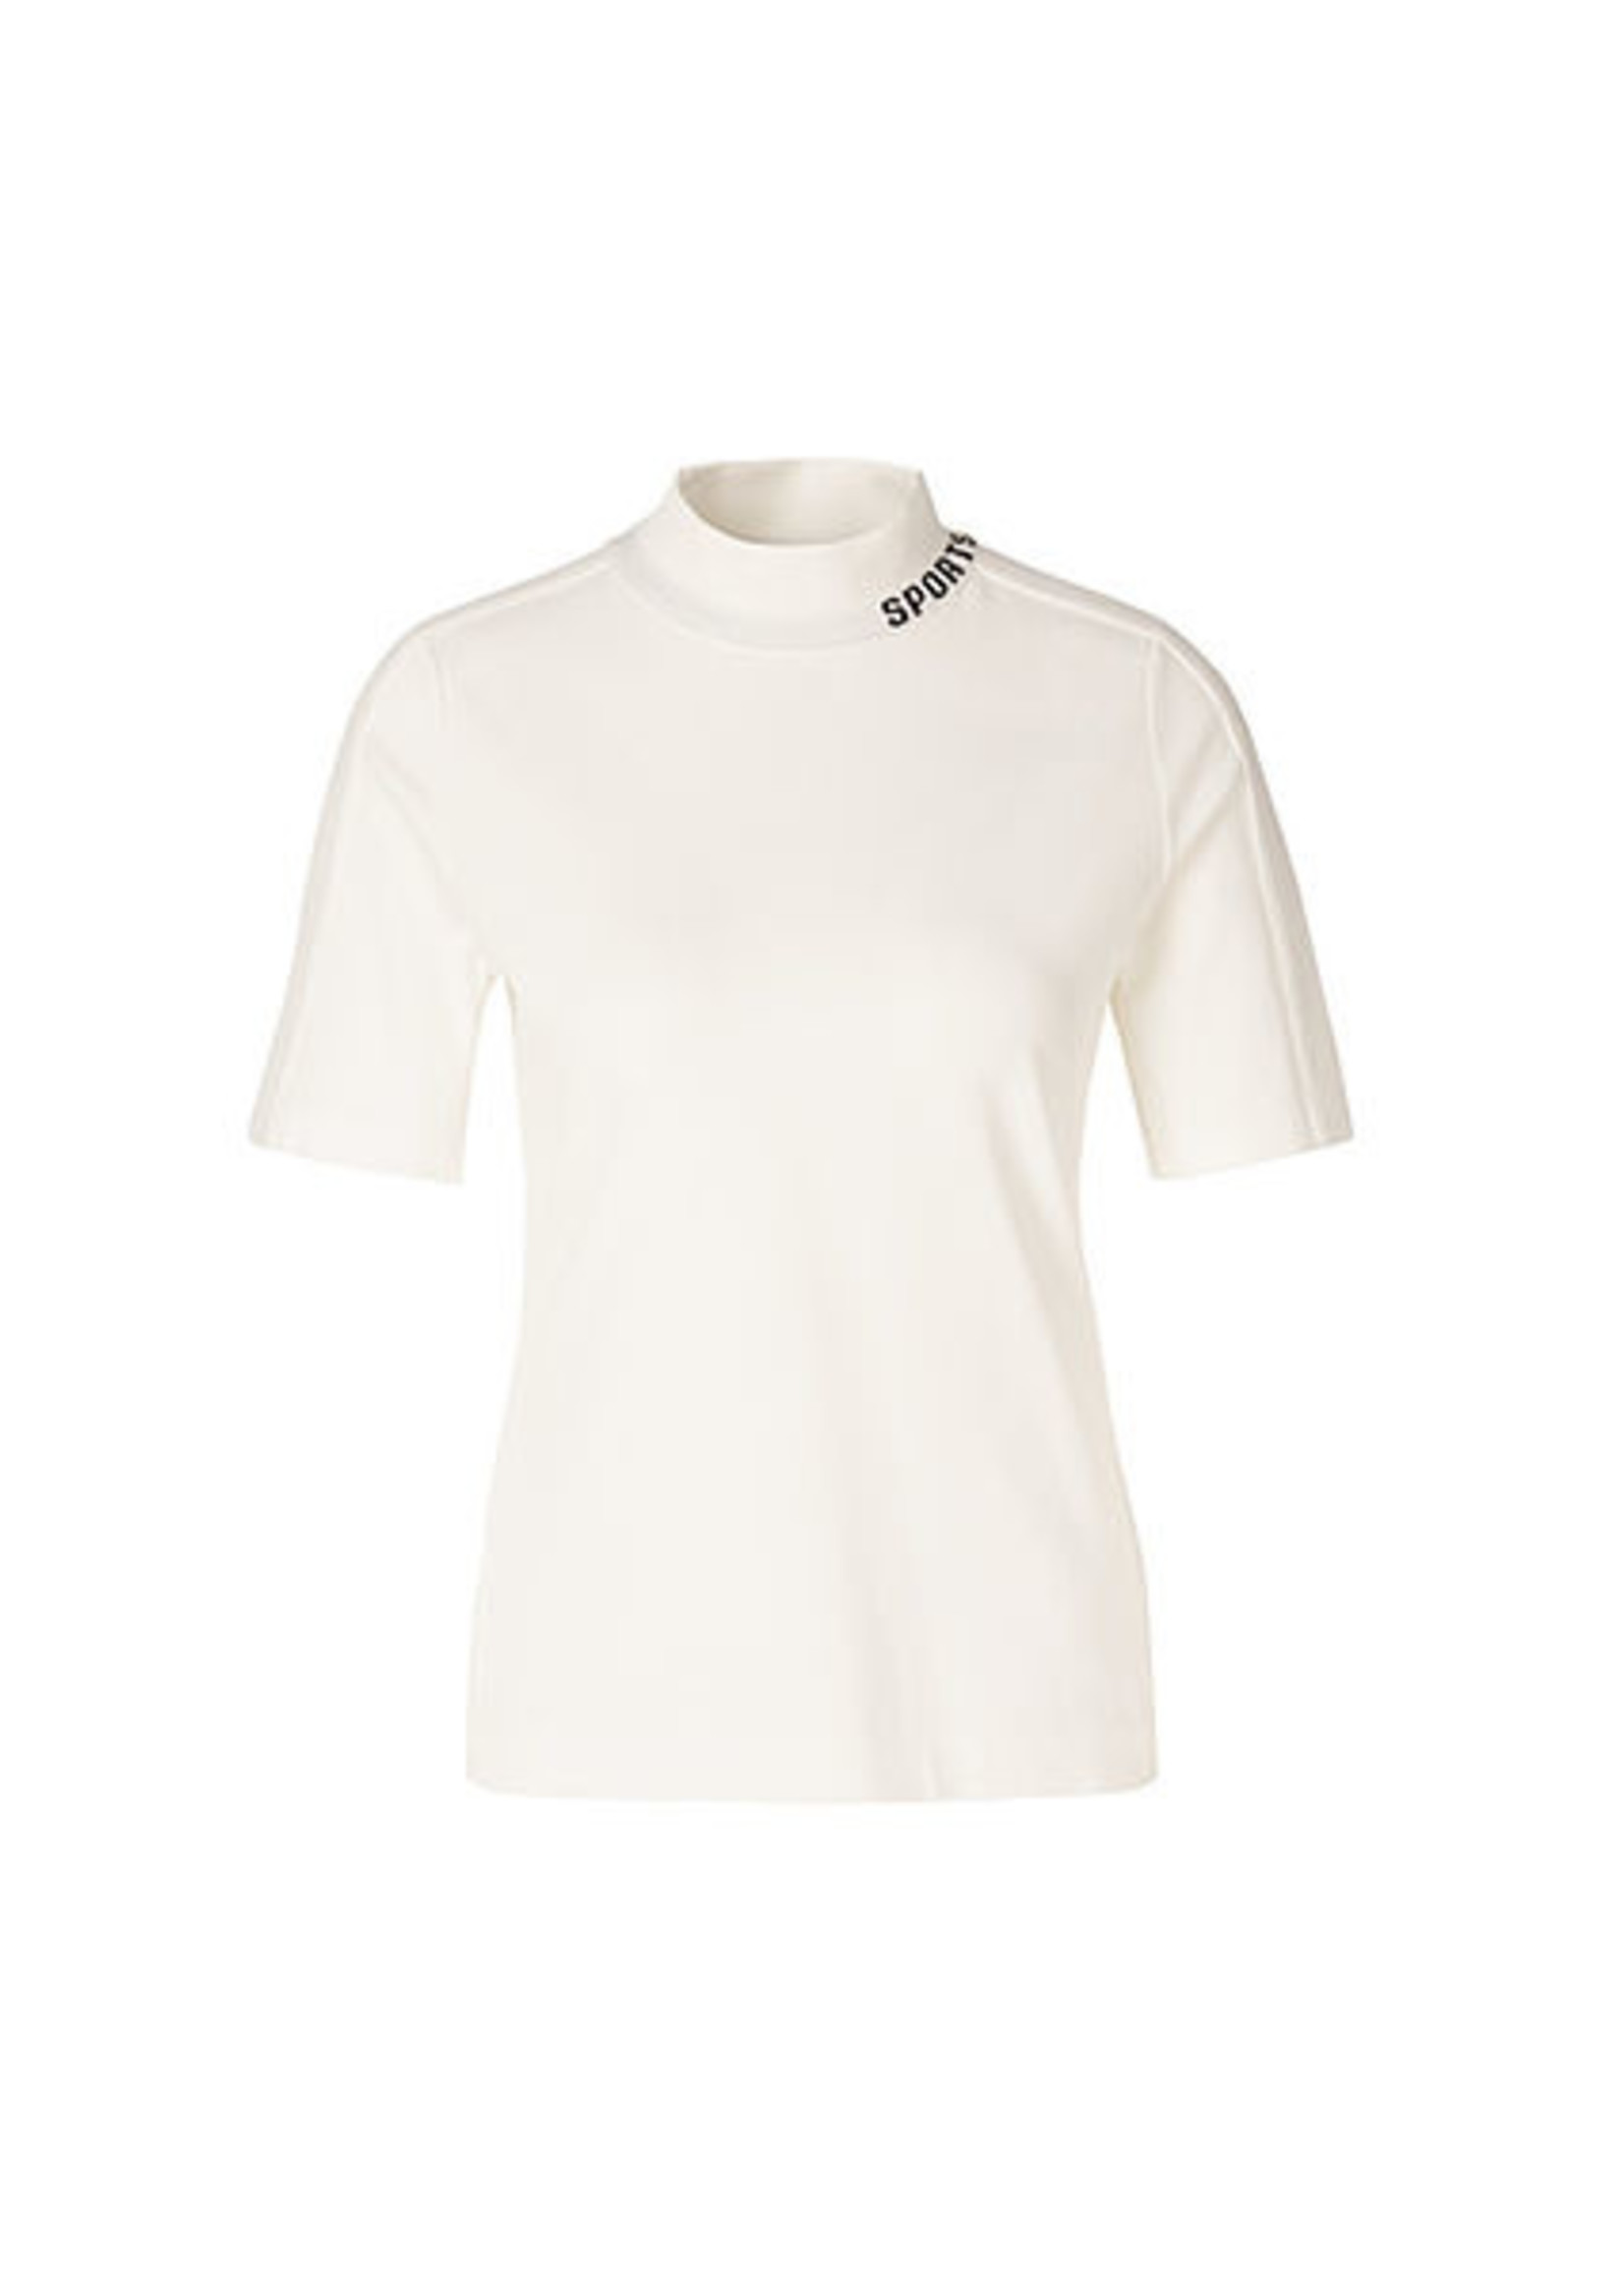 Marccain Sports Sweater RS 41.19 M12 off-white